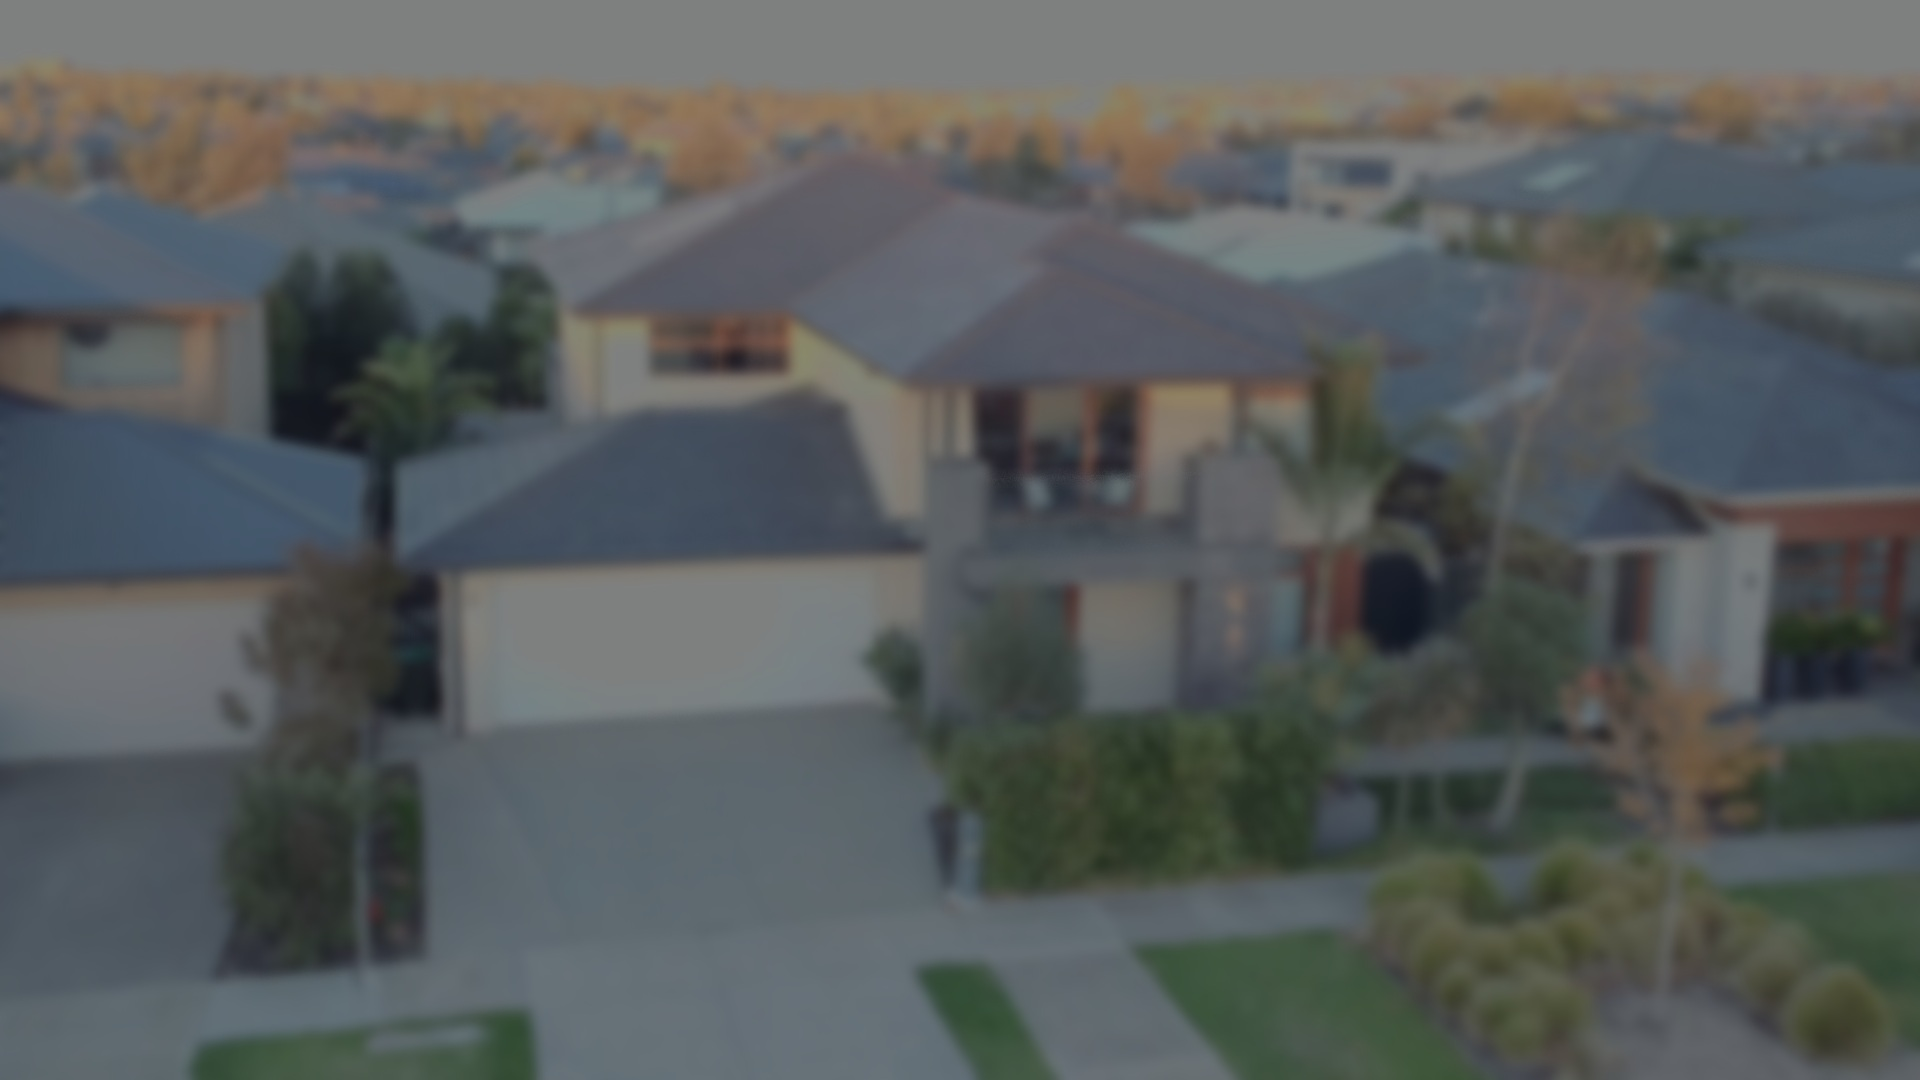 Property Video Tour - Cinematic Highlight Reel For Your Property1-3 Minute HD Edited VideoAerial Drone VideographyAgent Tour/VoiceoverReady To Share On Facebook/YouTube/Instagram48 Hour Delivery TimeLicenced Music Included